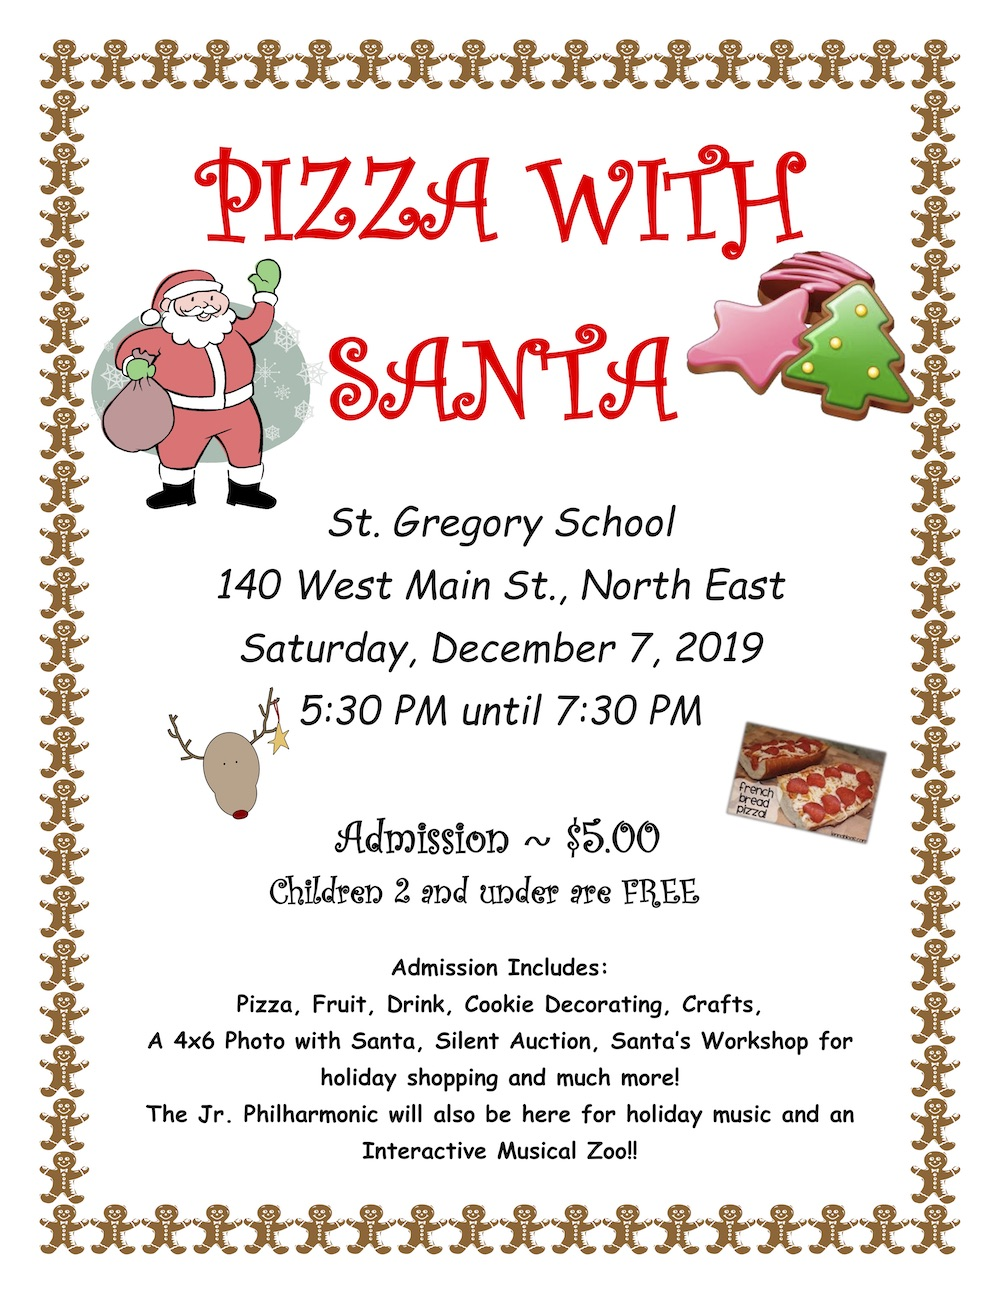 2019 Pizza with Santa